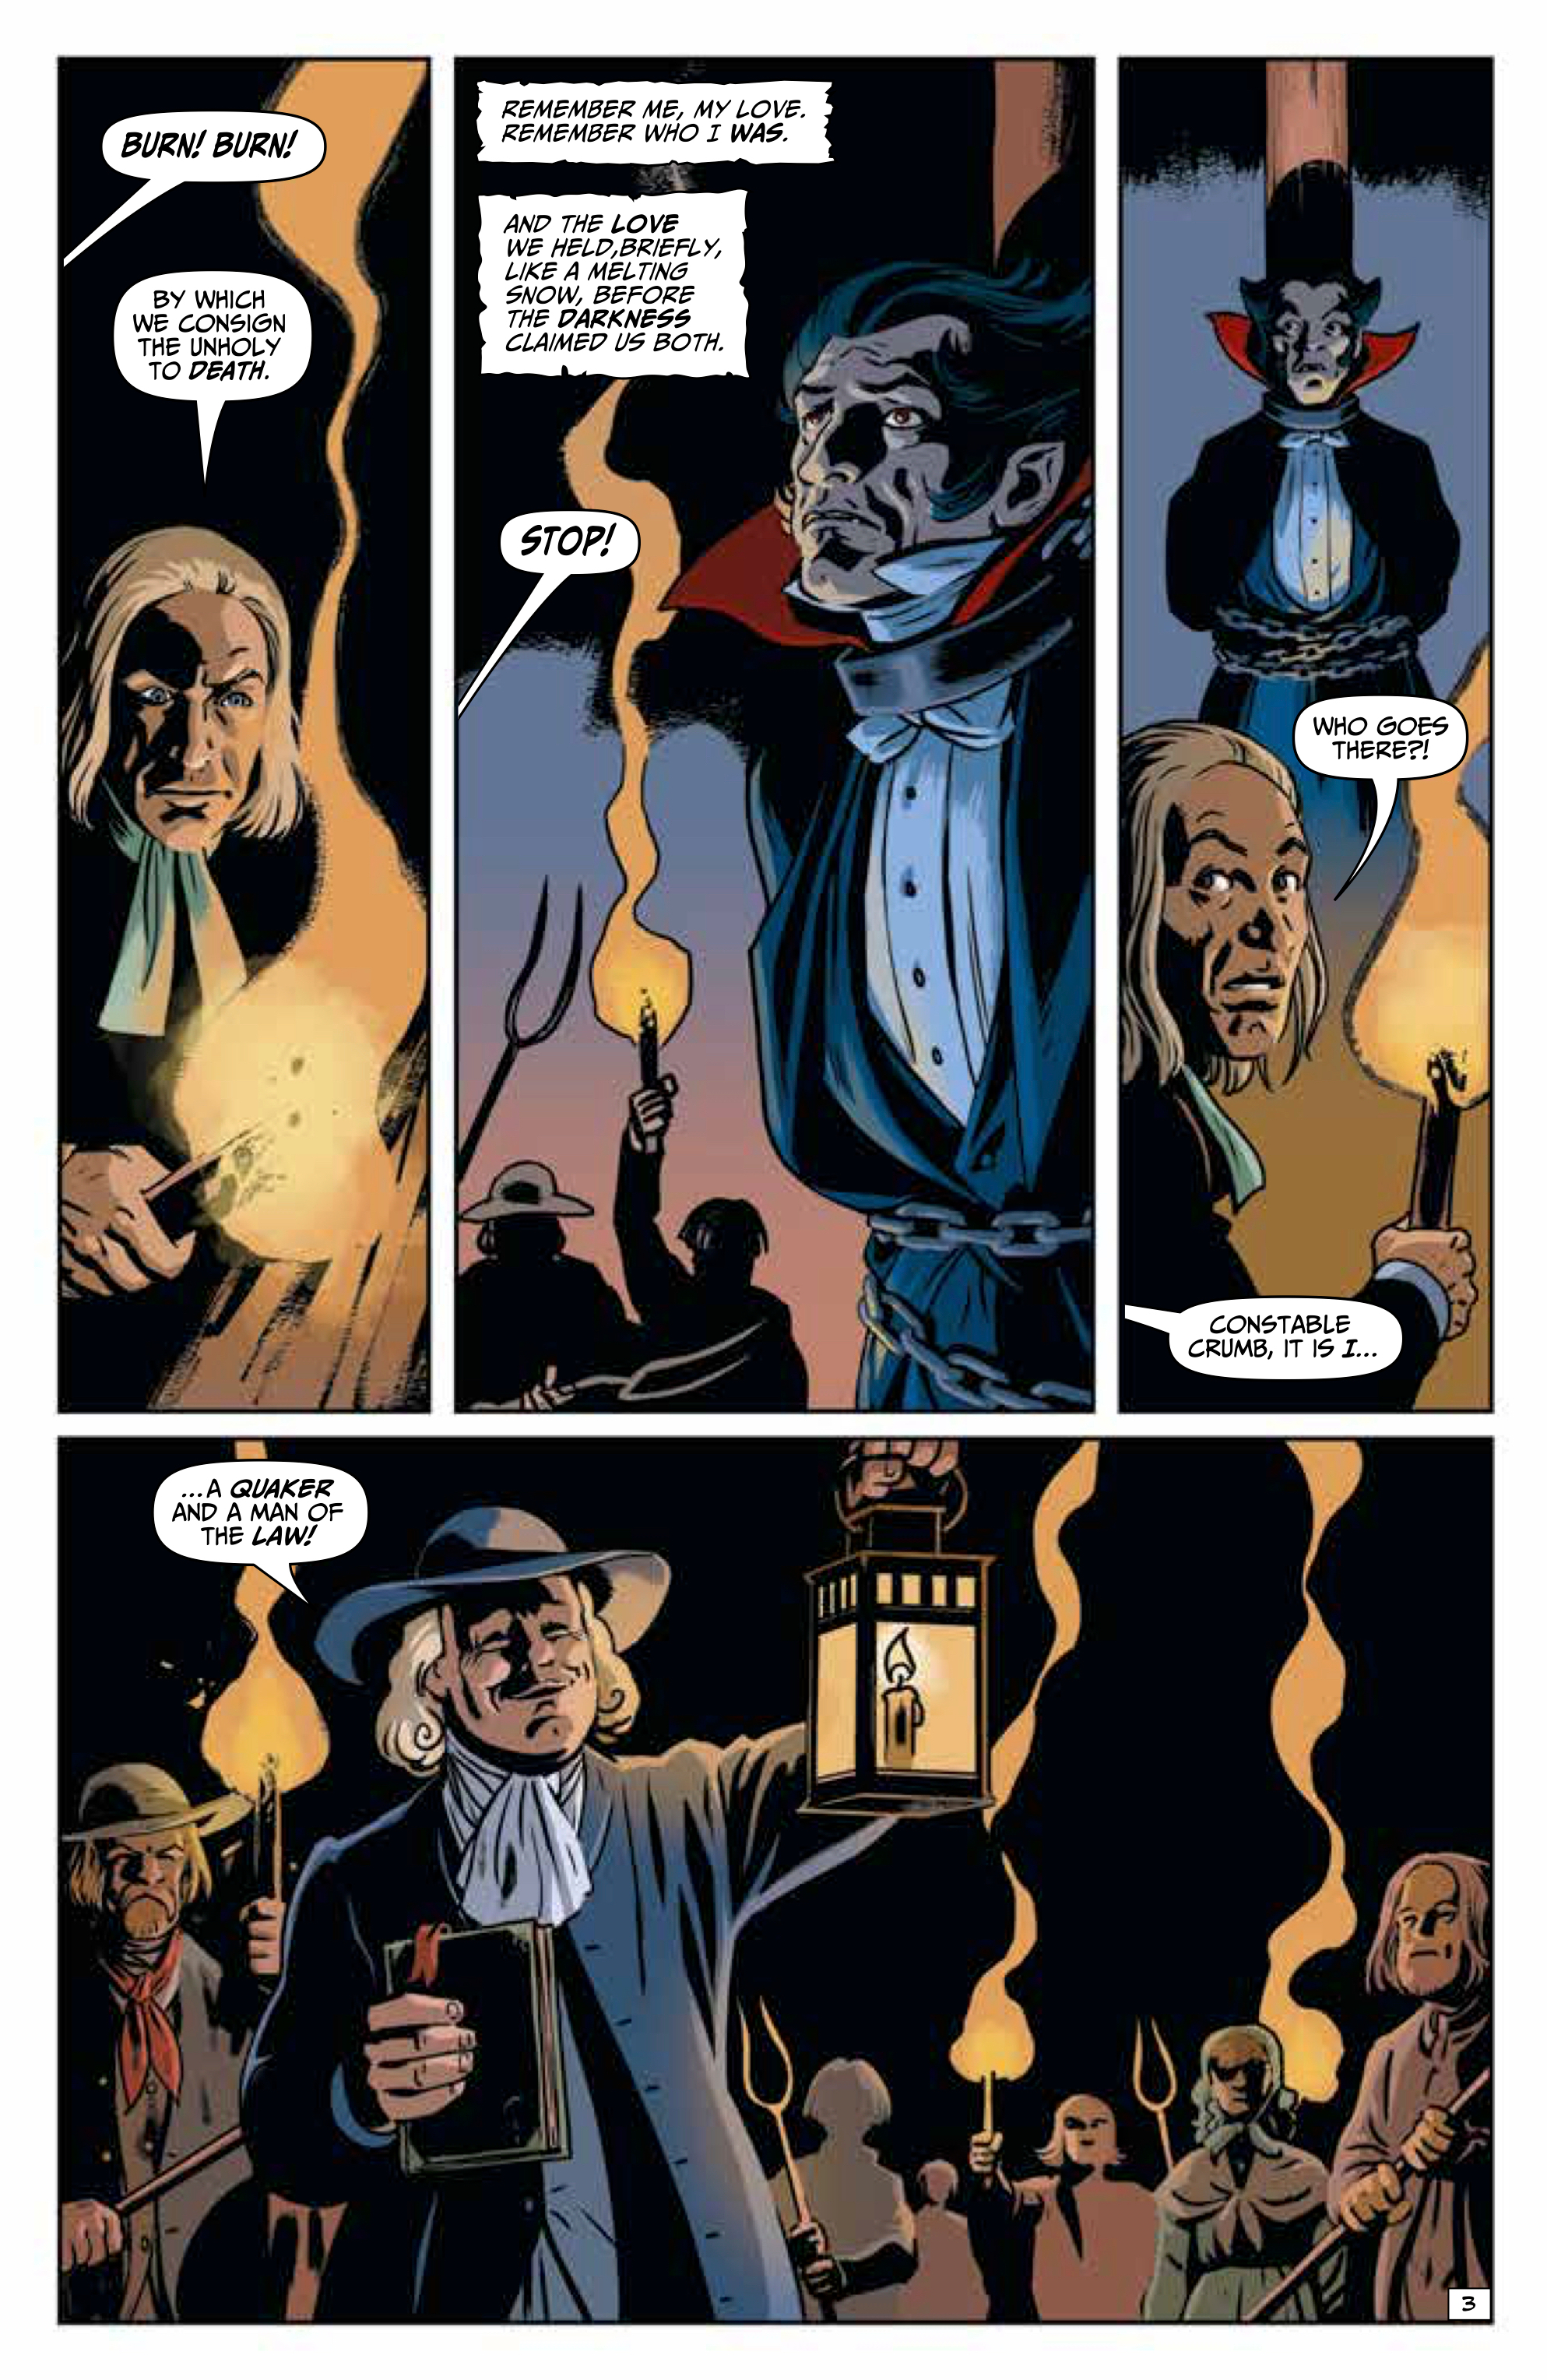 EDGAR ALLAN POE'S SNIFTER OF DEATH #1 Page 1